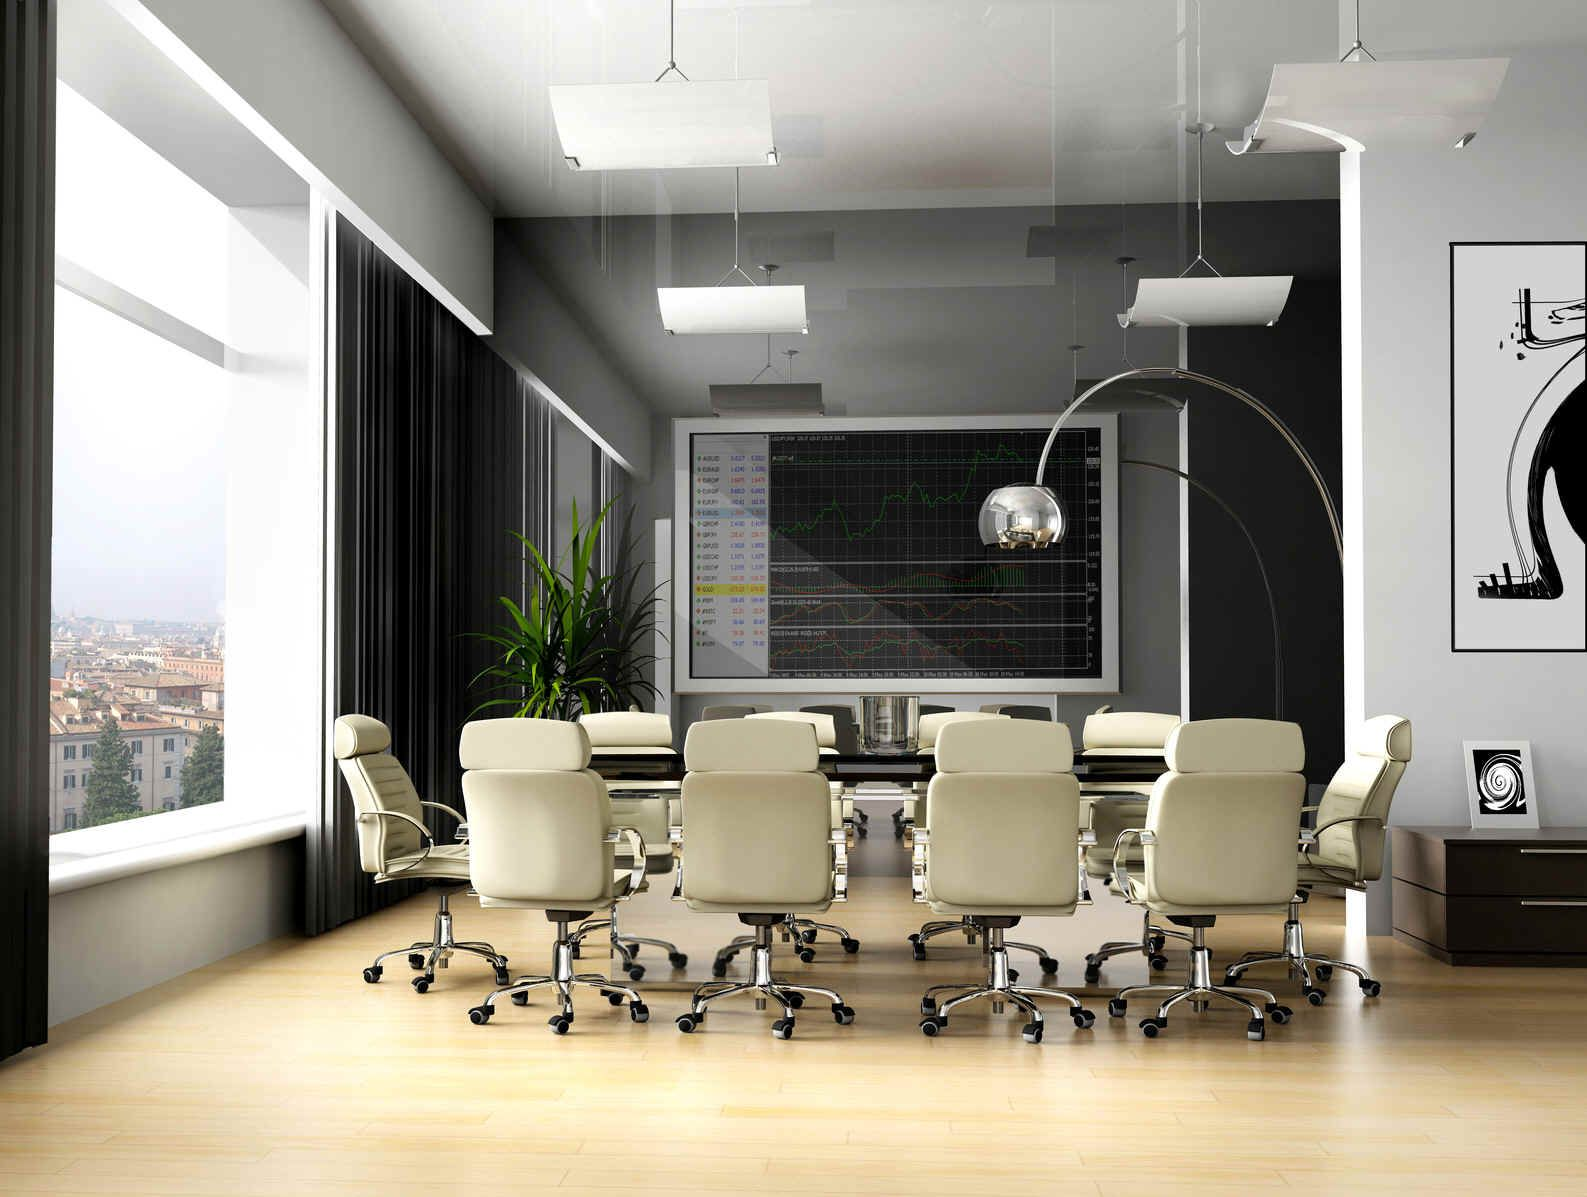 Modern Office Ideas Throughout Corporate Office Decor The Most Inspiring Office Decoration Designs In 2013 Modern Decor Space Design